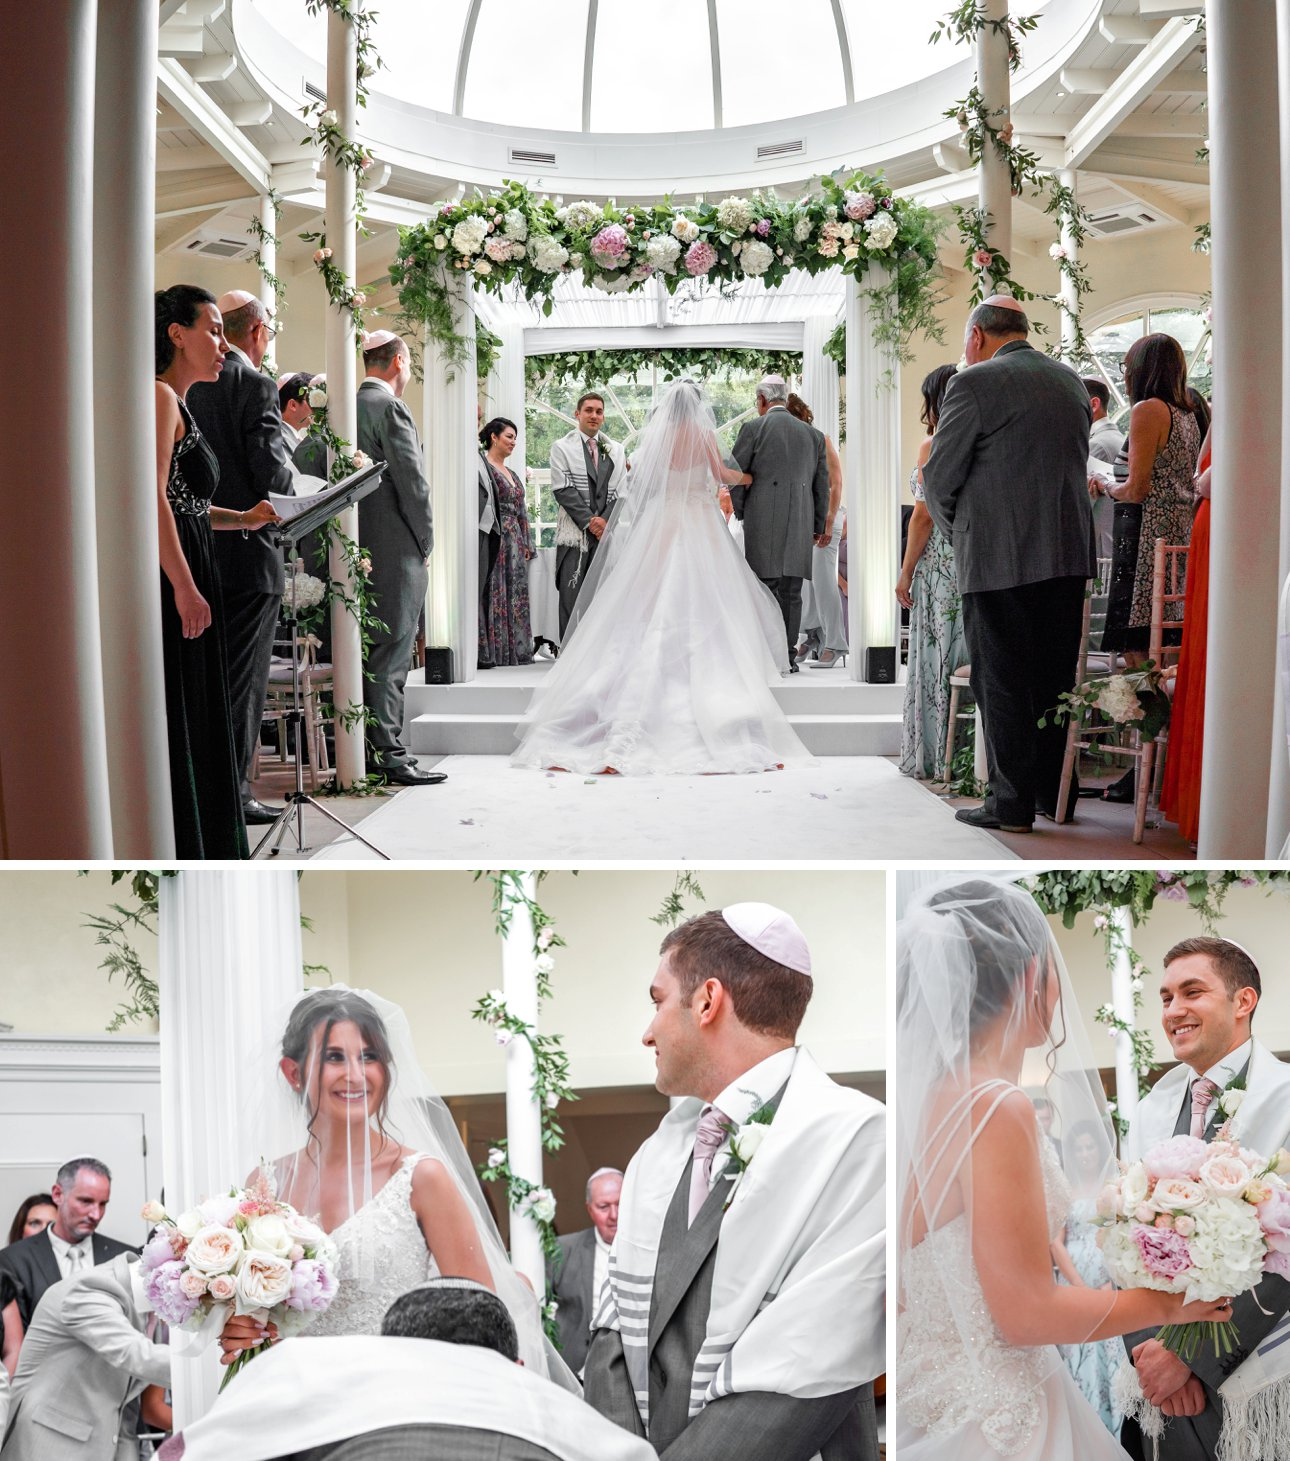 The bride, groom and their close family members gather under the chuppah for a Jewish marriage ceremony.